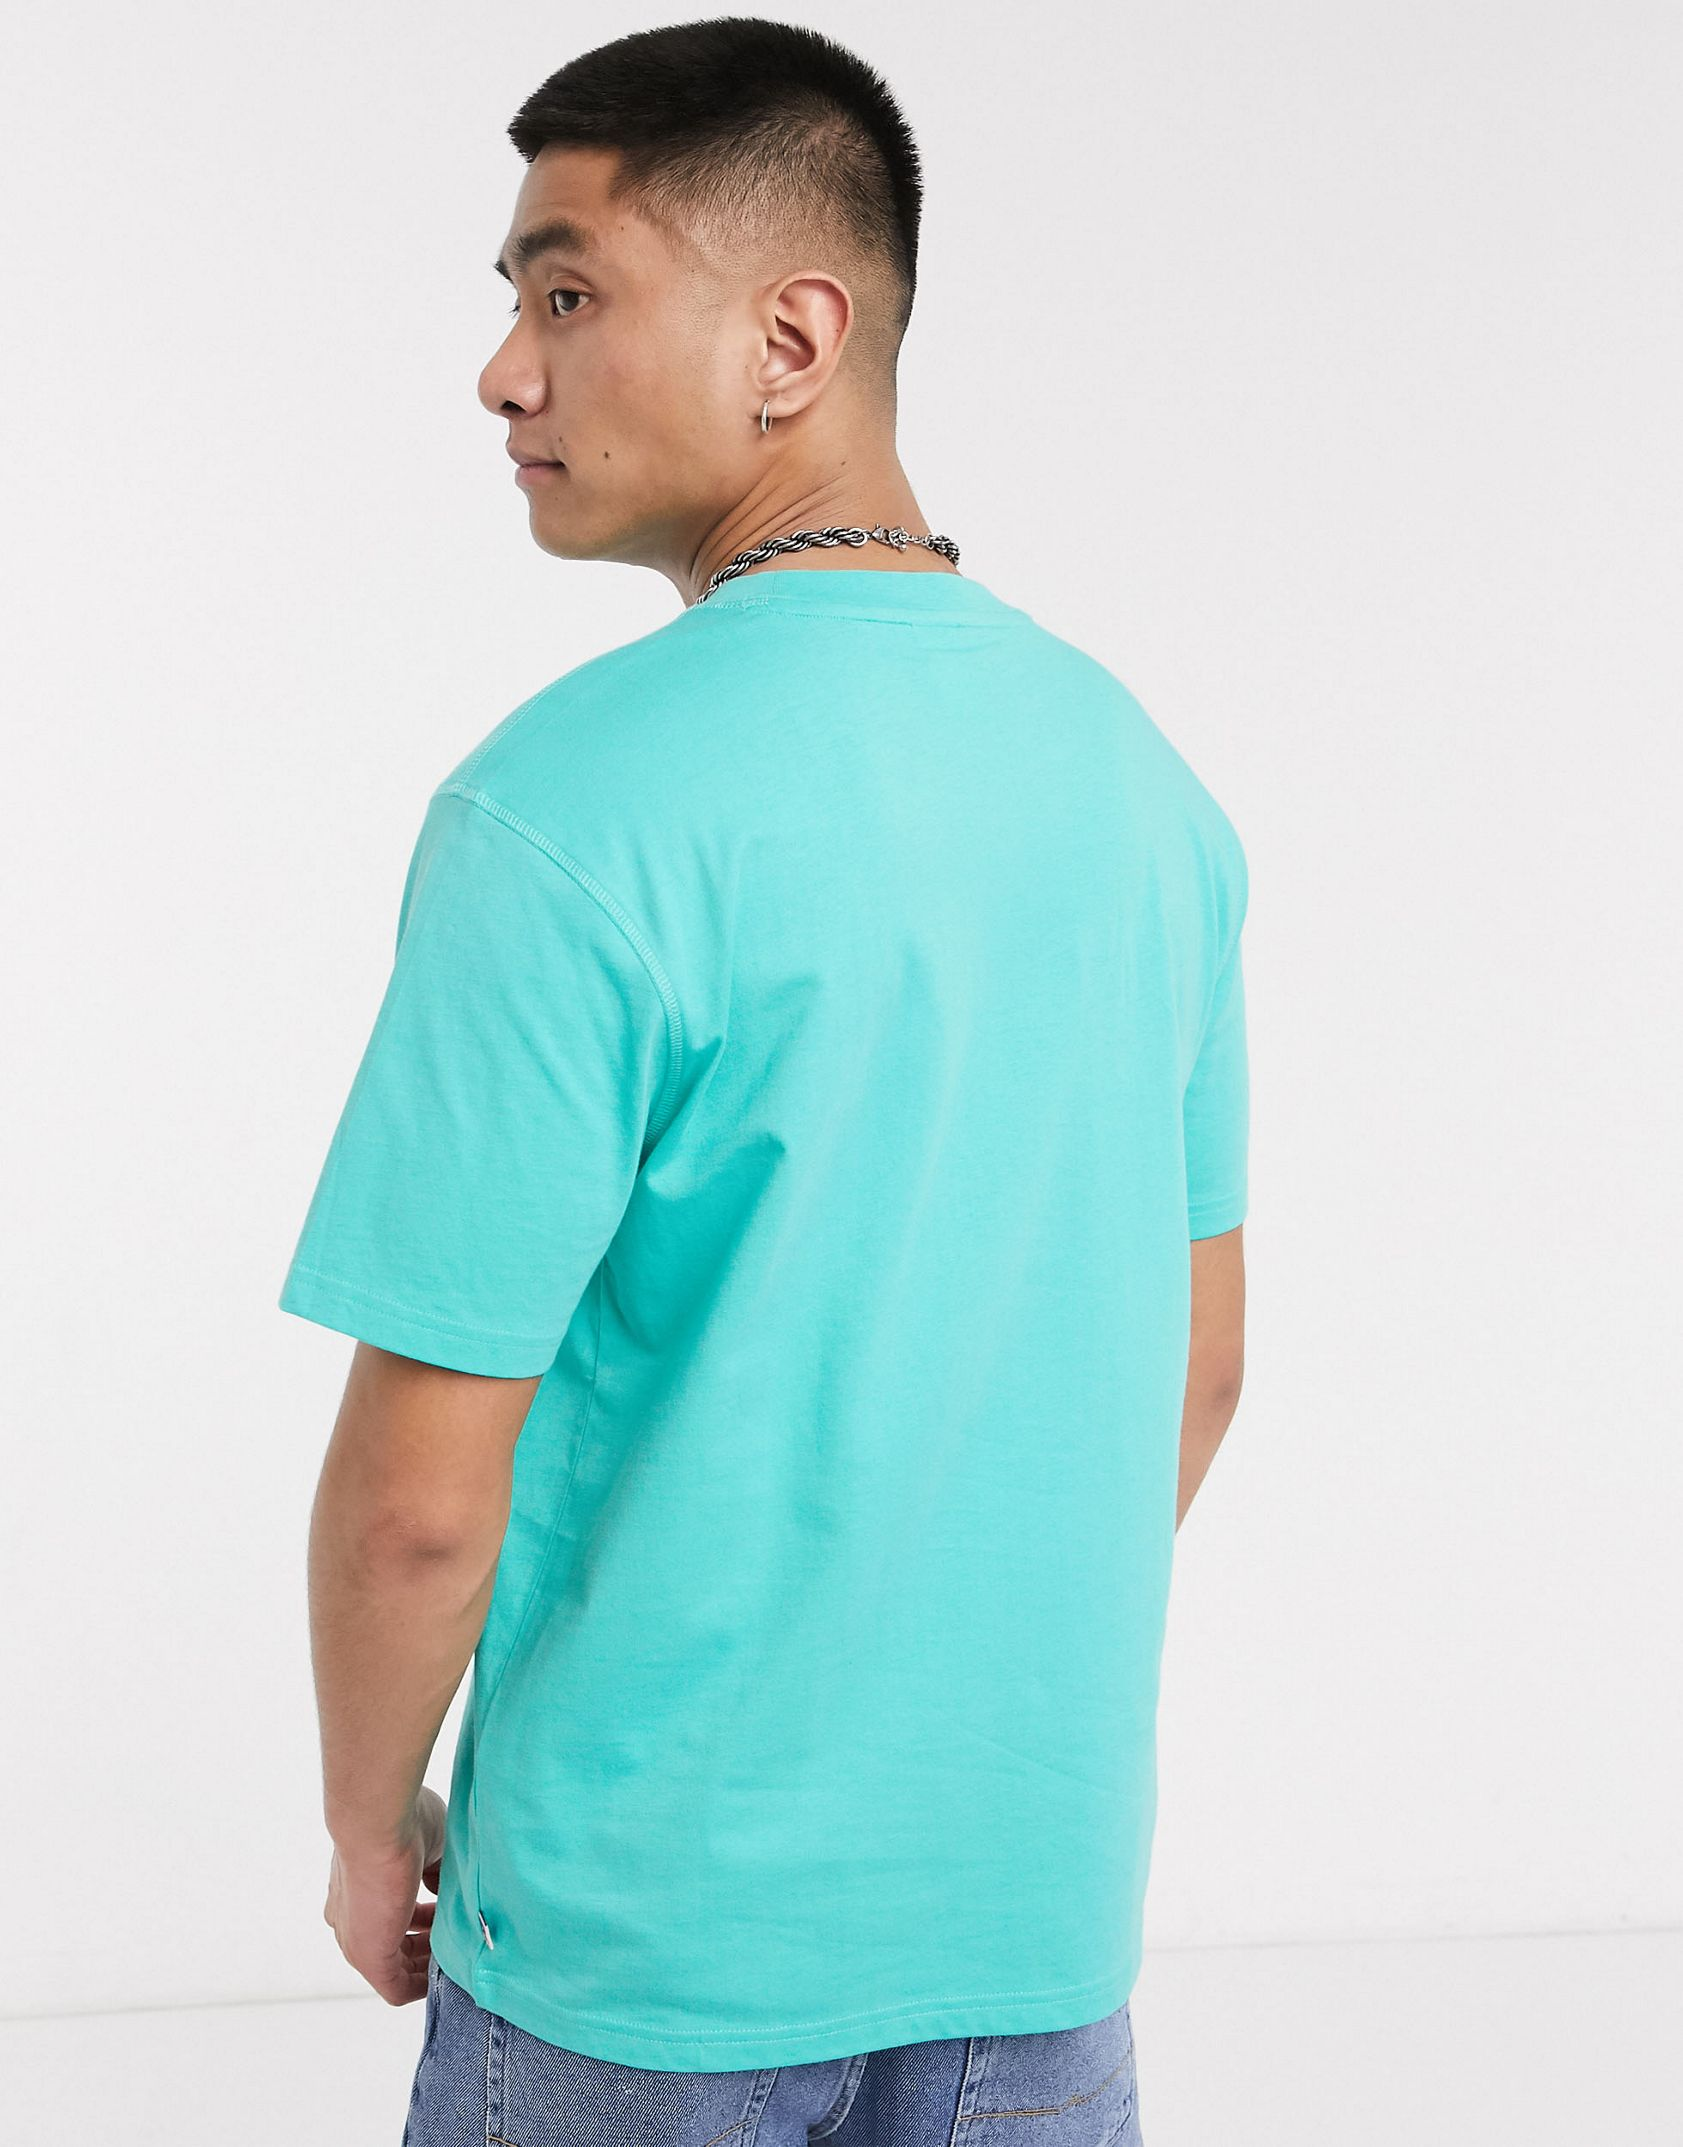 Russell Athletic Baseliner t-shirt with chest logo in turquoise - ASOS Price Checker